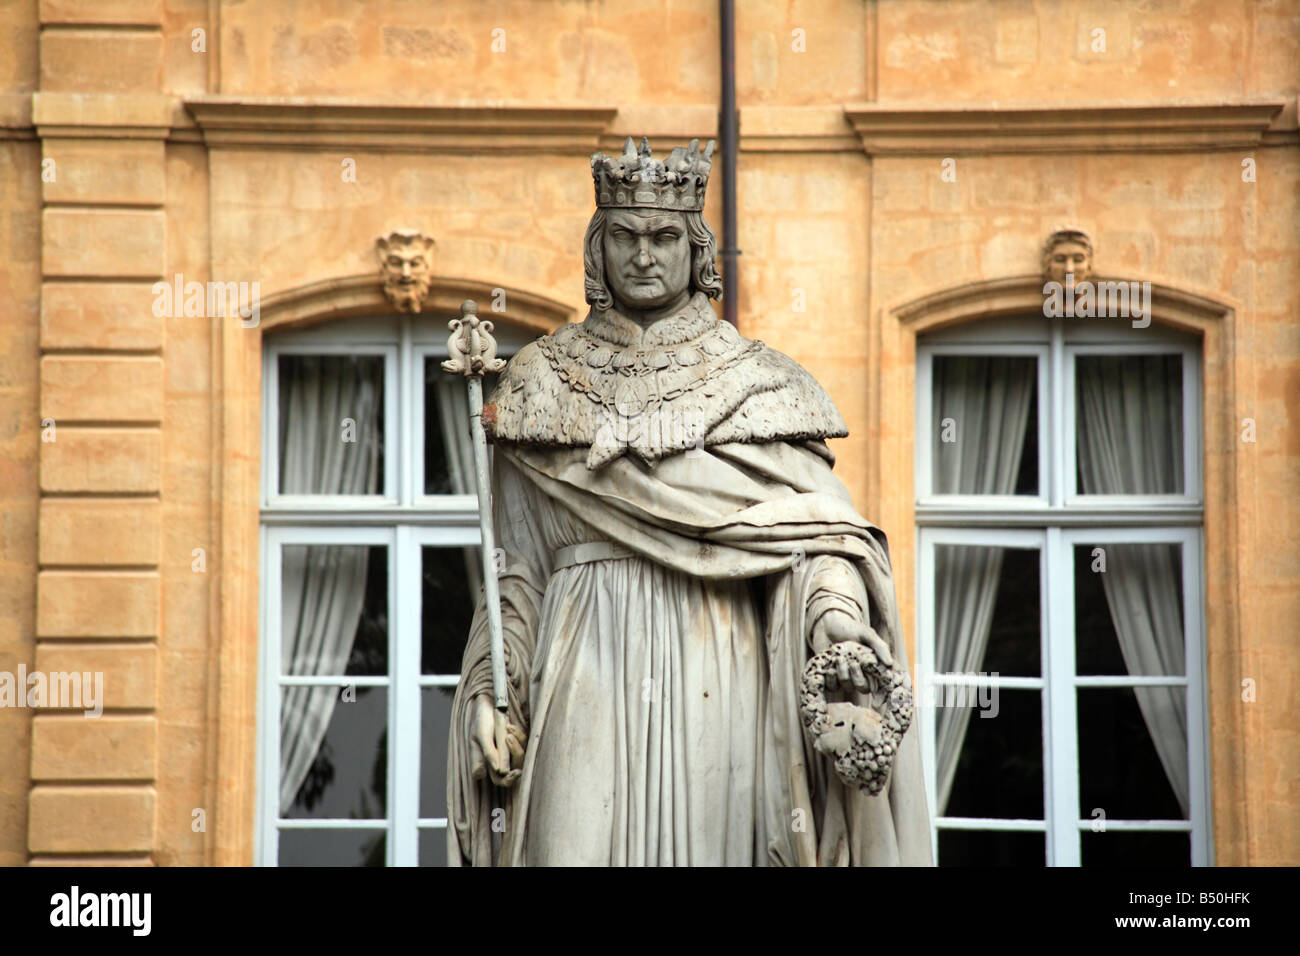 Statue of the king rene cours mirabeau, aix en provence, france - Stock Image